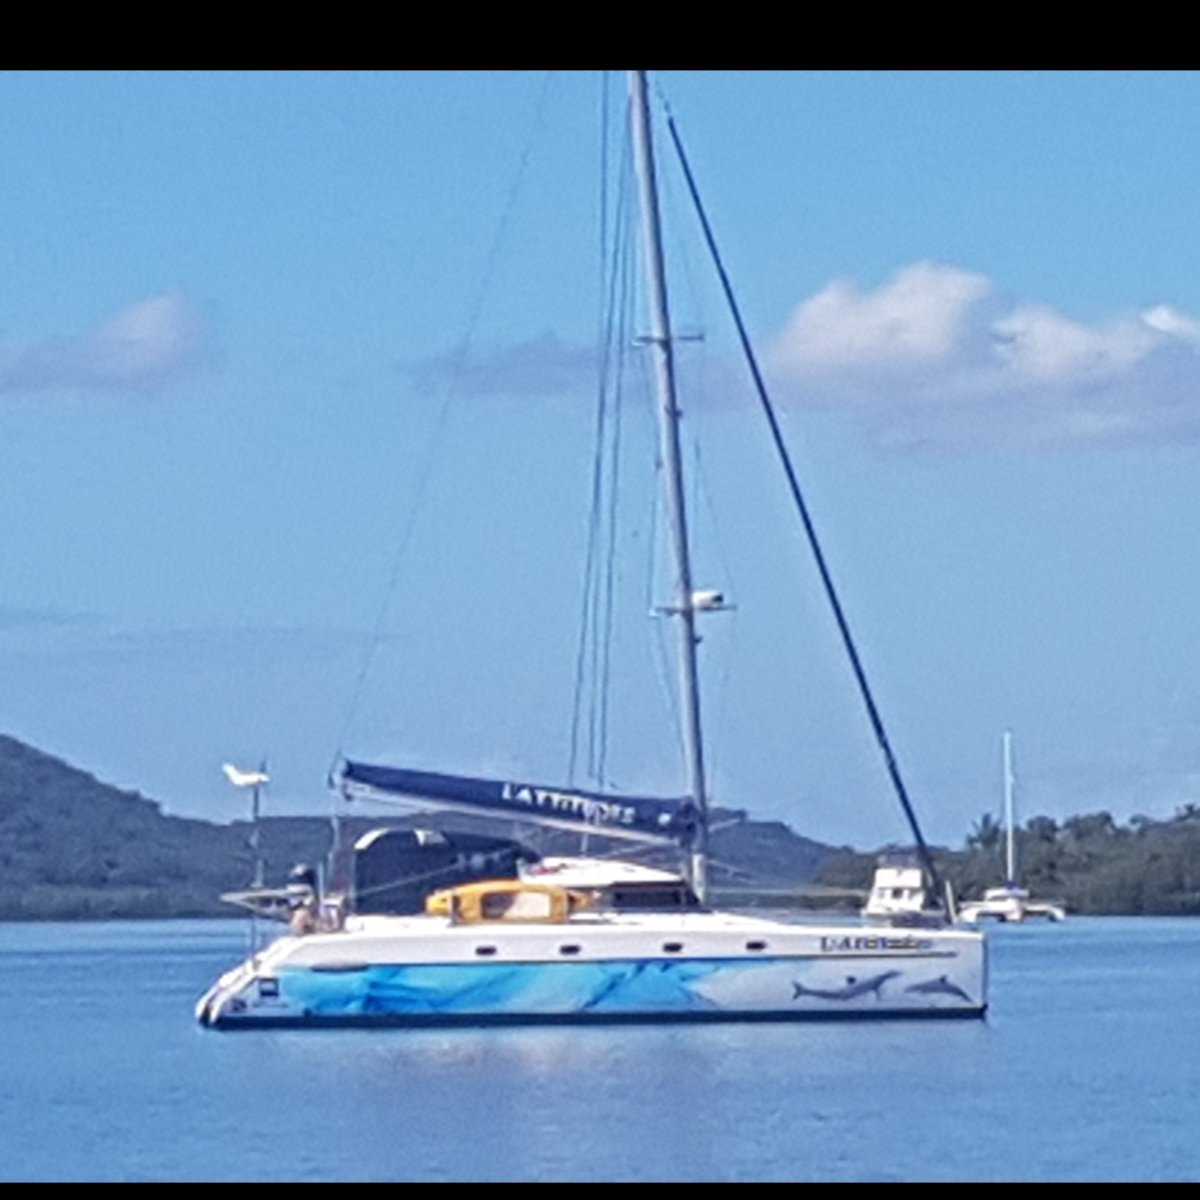 Fountaine Pajot Belize 43 2003 4cabin charter version, with 2 heads removed.:New Wrap from Boat Works